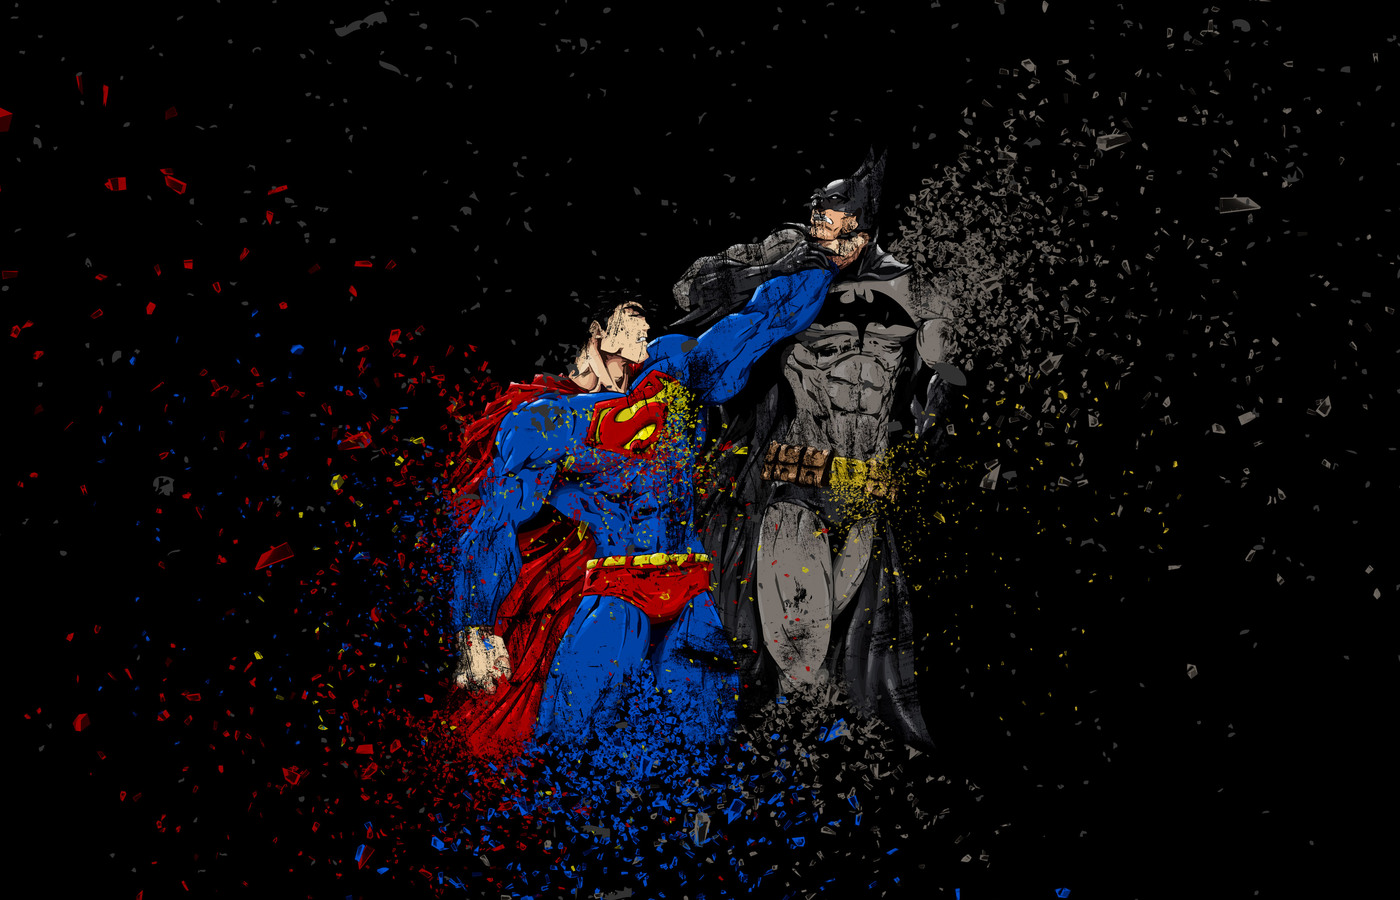 batman-vs-superman-ruggon-style-sh.jpg